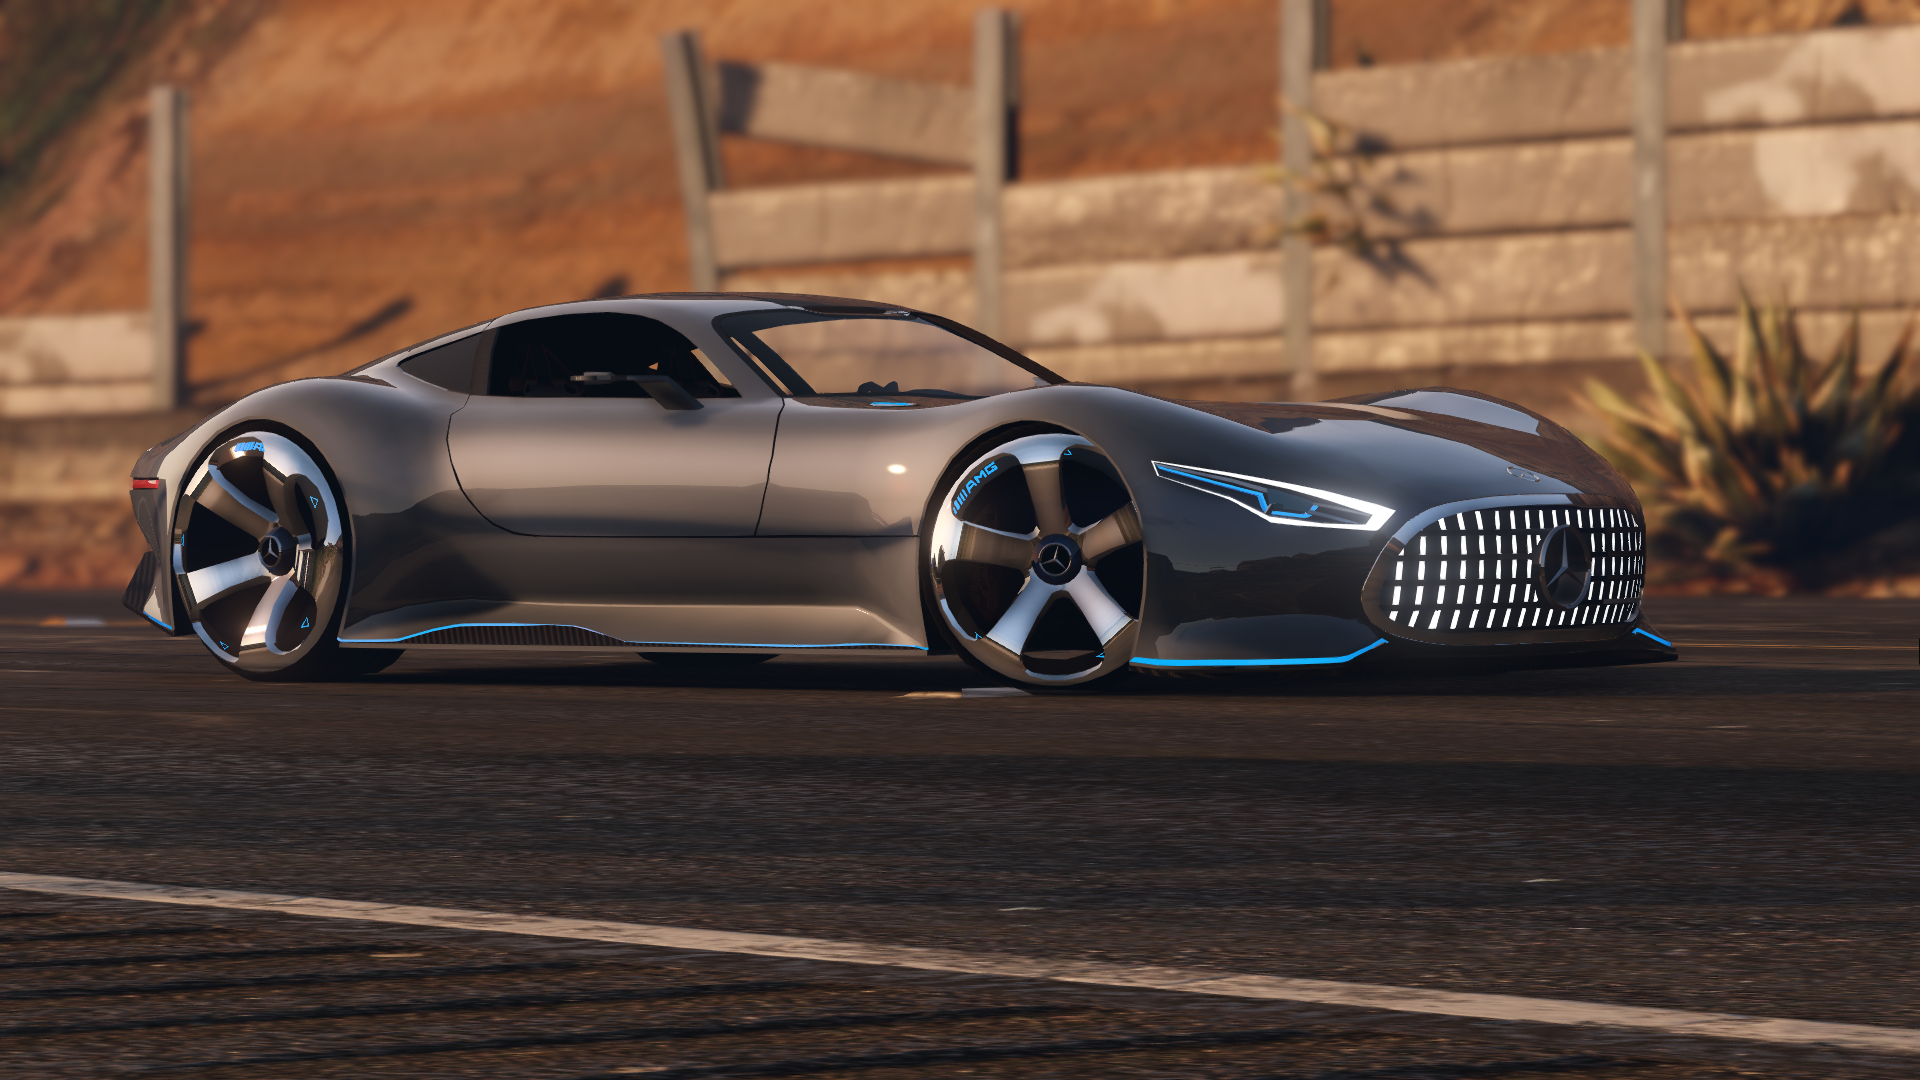 Mercedes benz amg vision gt add on gta5 for Mercedes benz amg vision